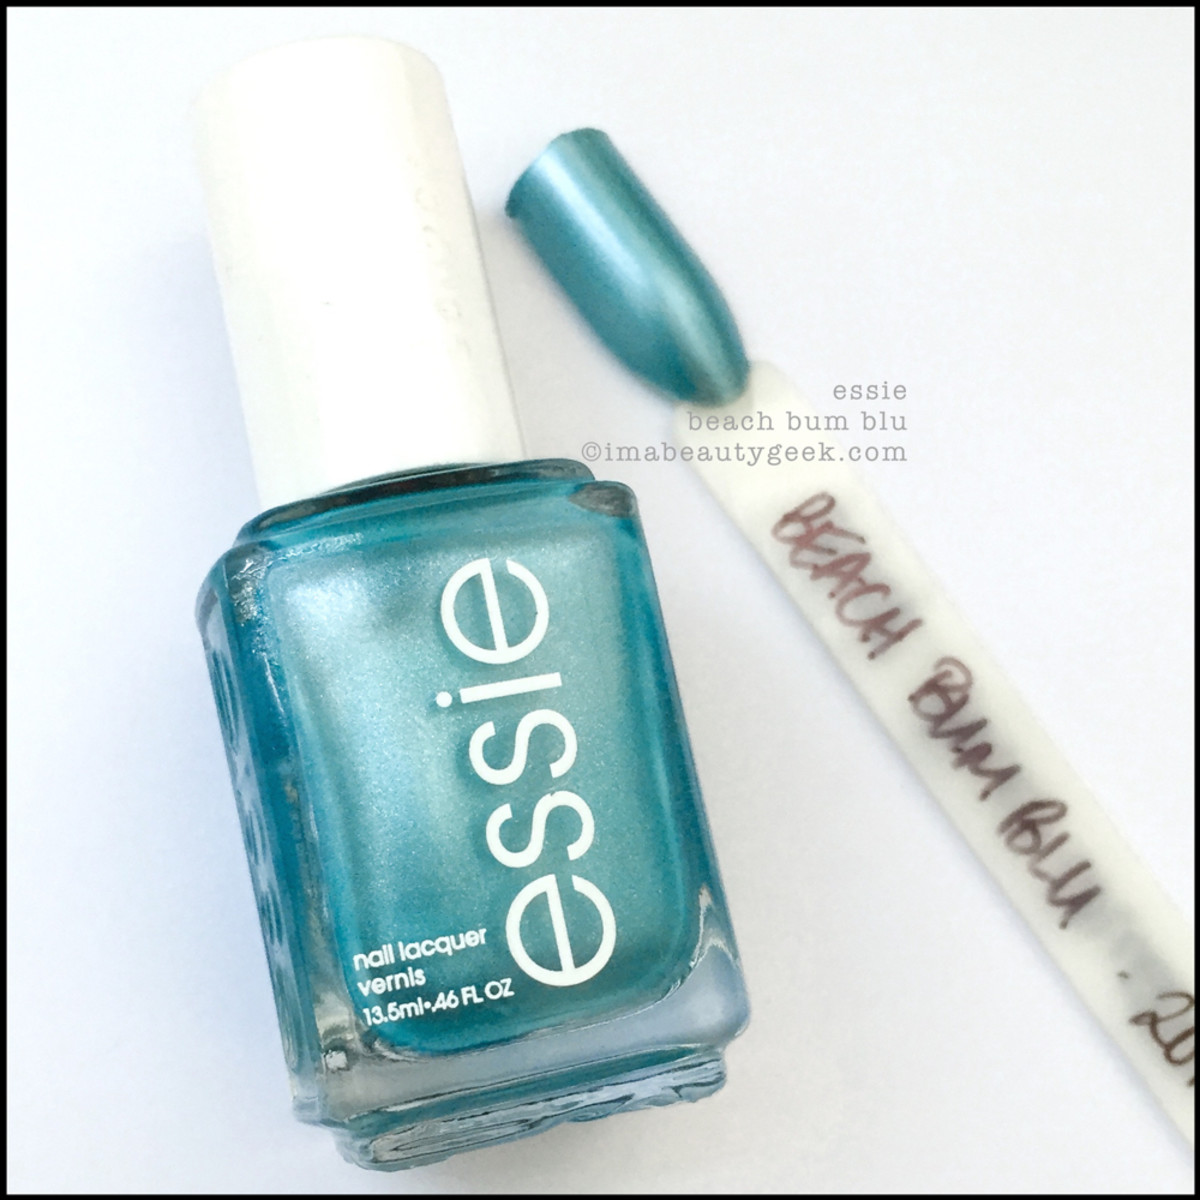 Essie Beach Bum Blue Manigeek Swatch Header